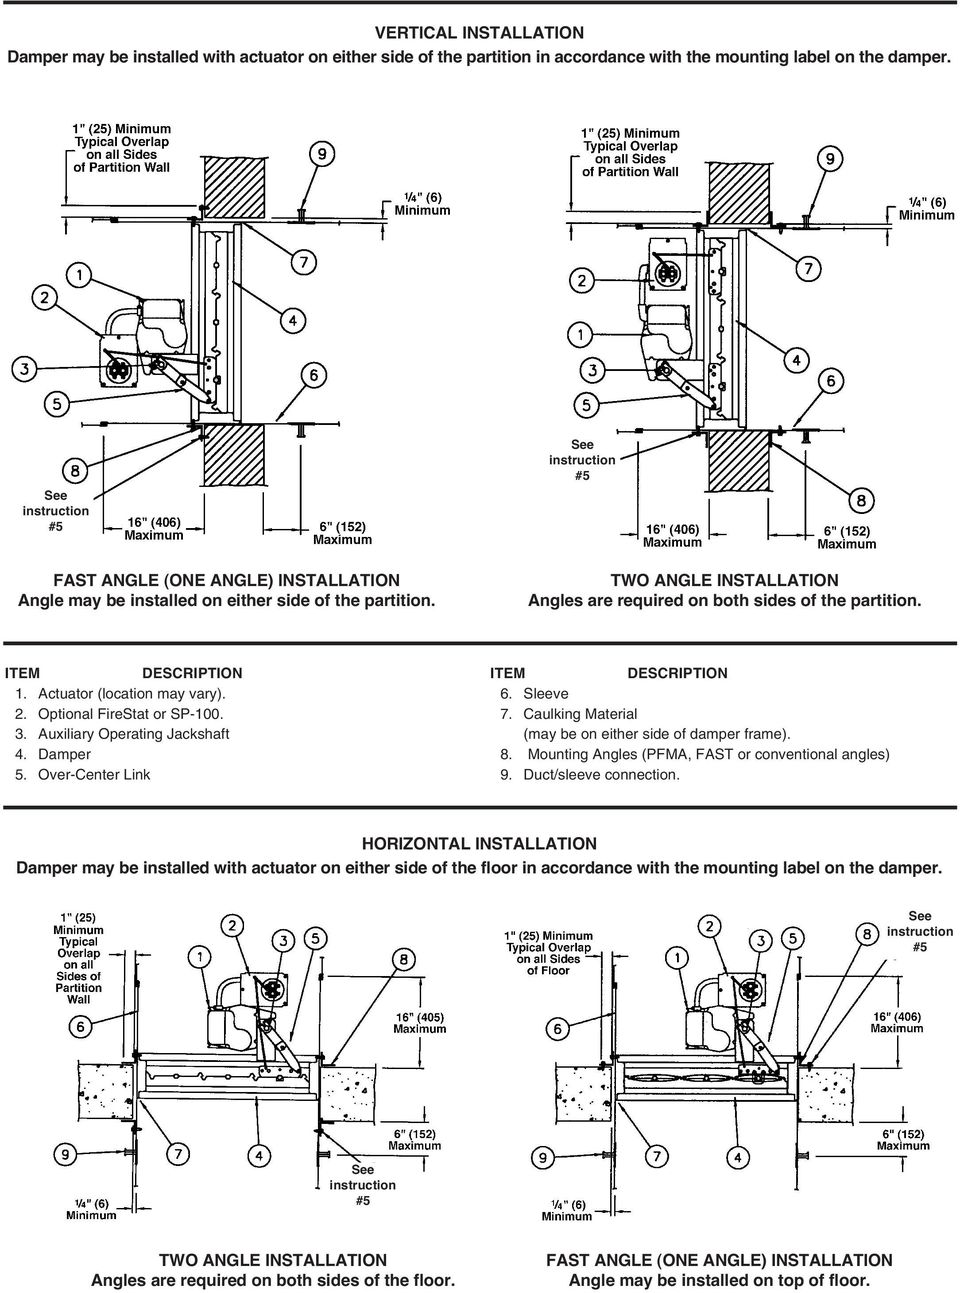 FSD35, FSD36 AND FSD37 COMBINATION FIRE and SMOKE DAMPERS - PDF on hoa switch diagram, fire damper installation wiring, ladder for fire alarm diagram, fire alarm damper wiring, hand off auto switch diagram, fire smoke damper motor, duct damper diagram,